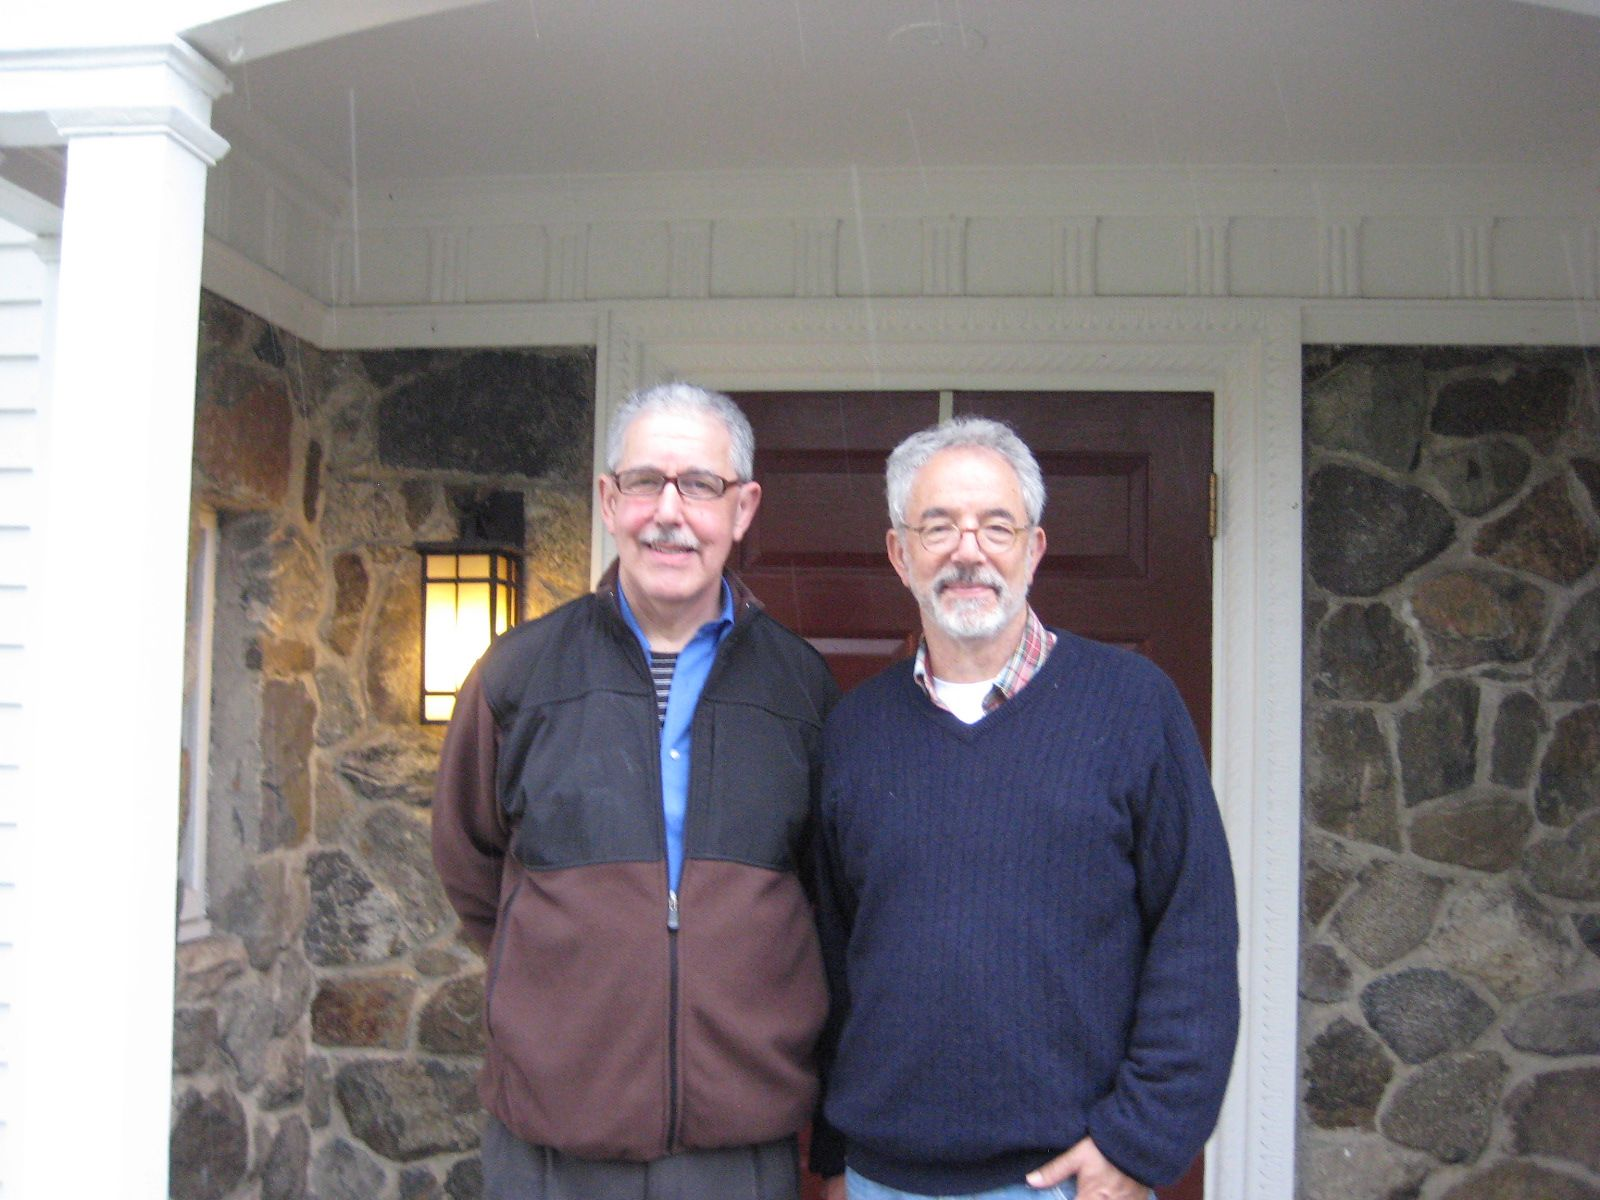 Buddy Karelis '63 and his brother Bill '65 visited the Alumni House in April 2013.